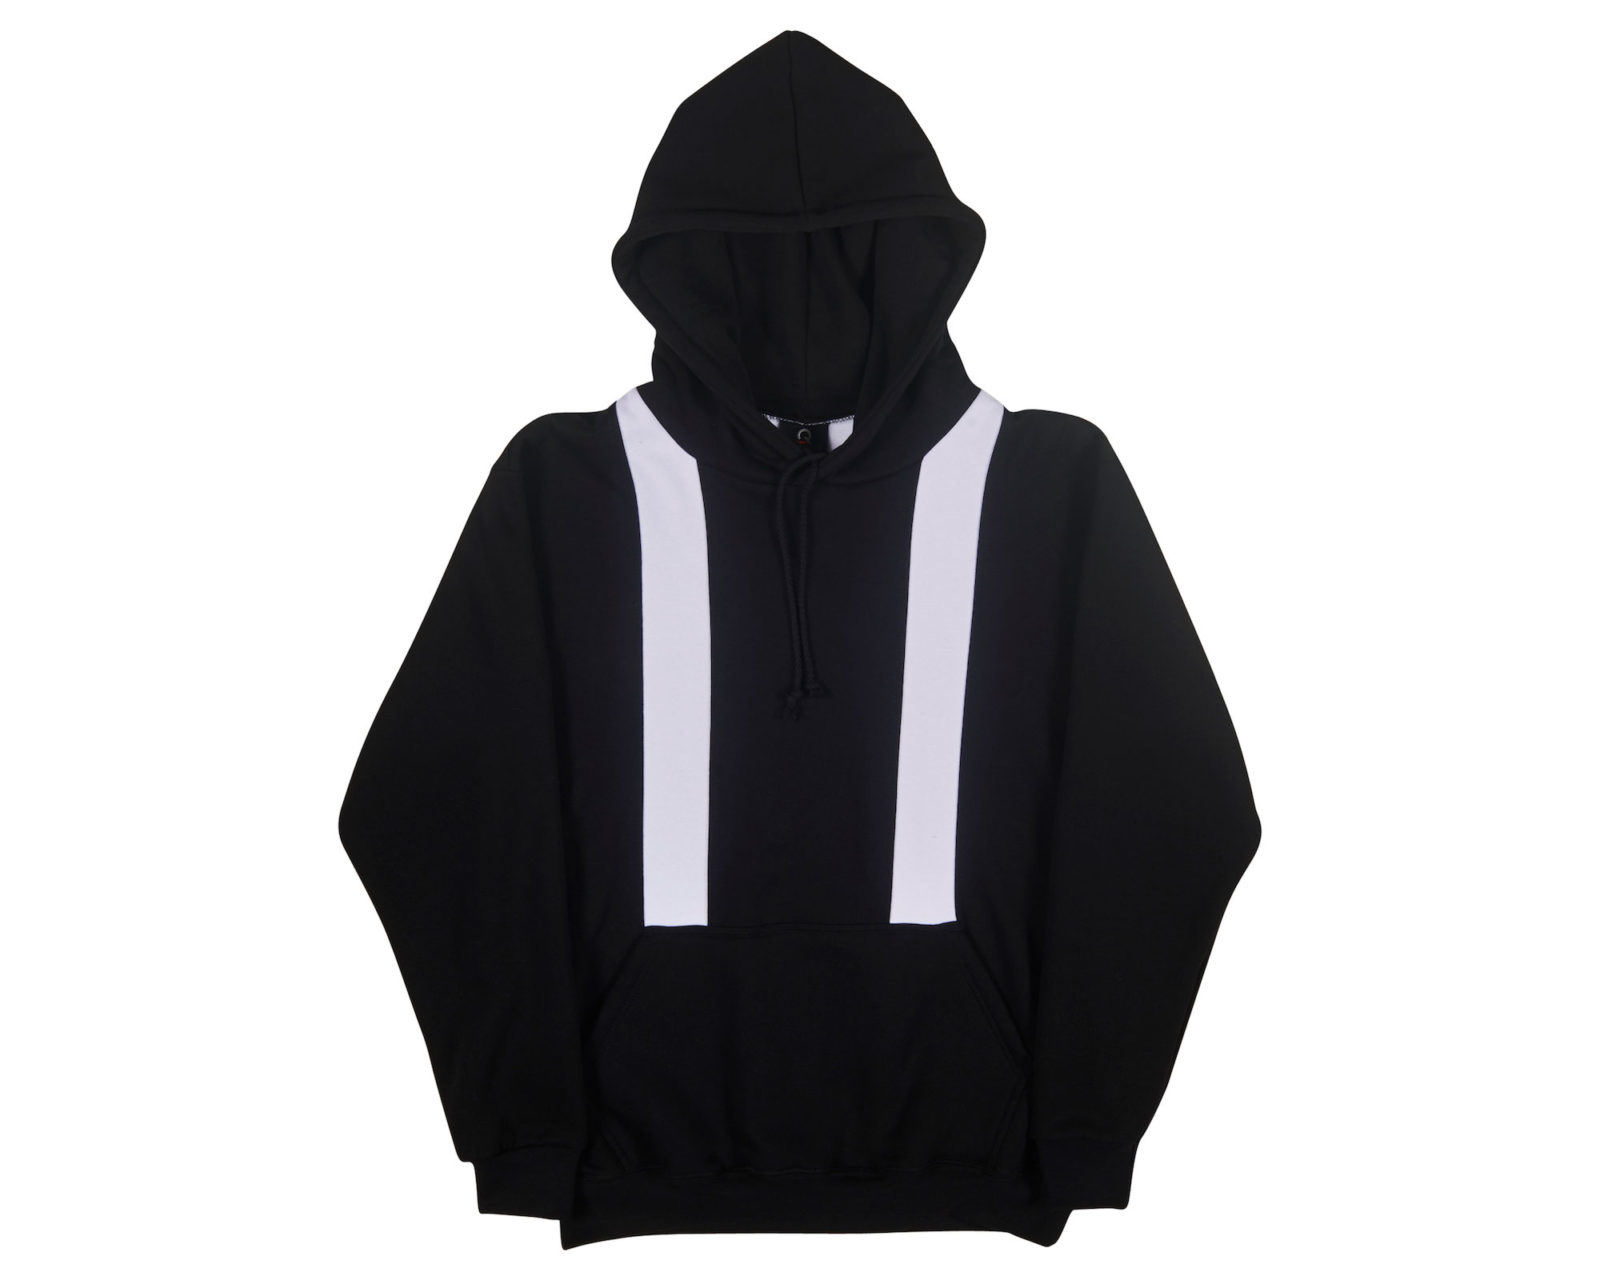 Qualitops Custom Made Mens Two Tone Hoodie Polycotton Australian made clothing